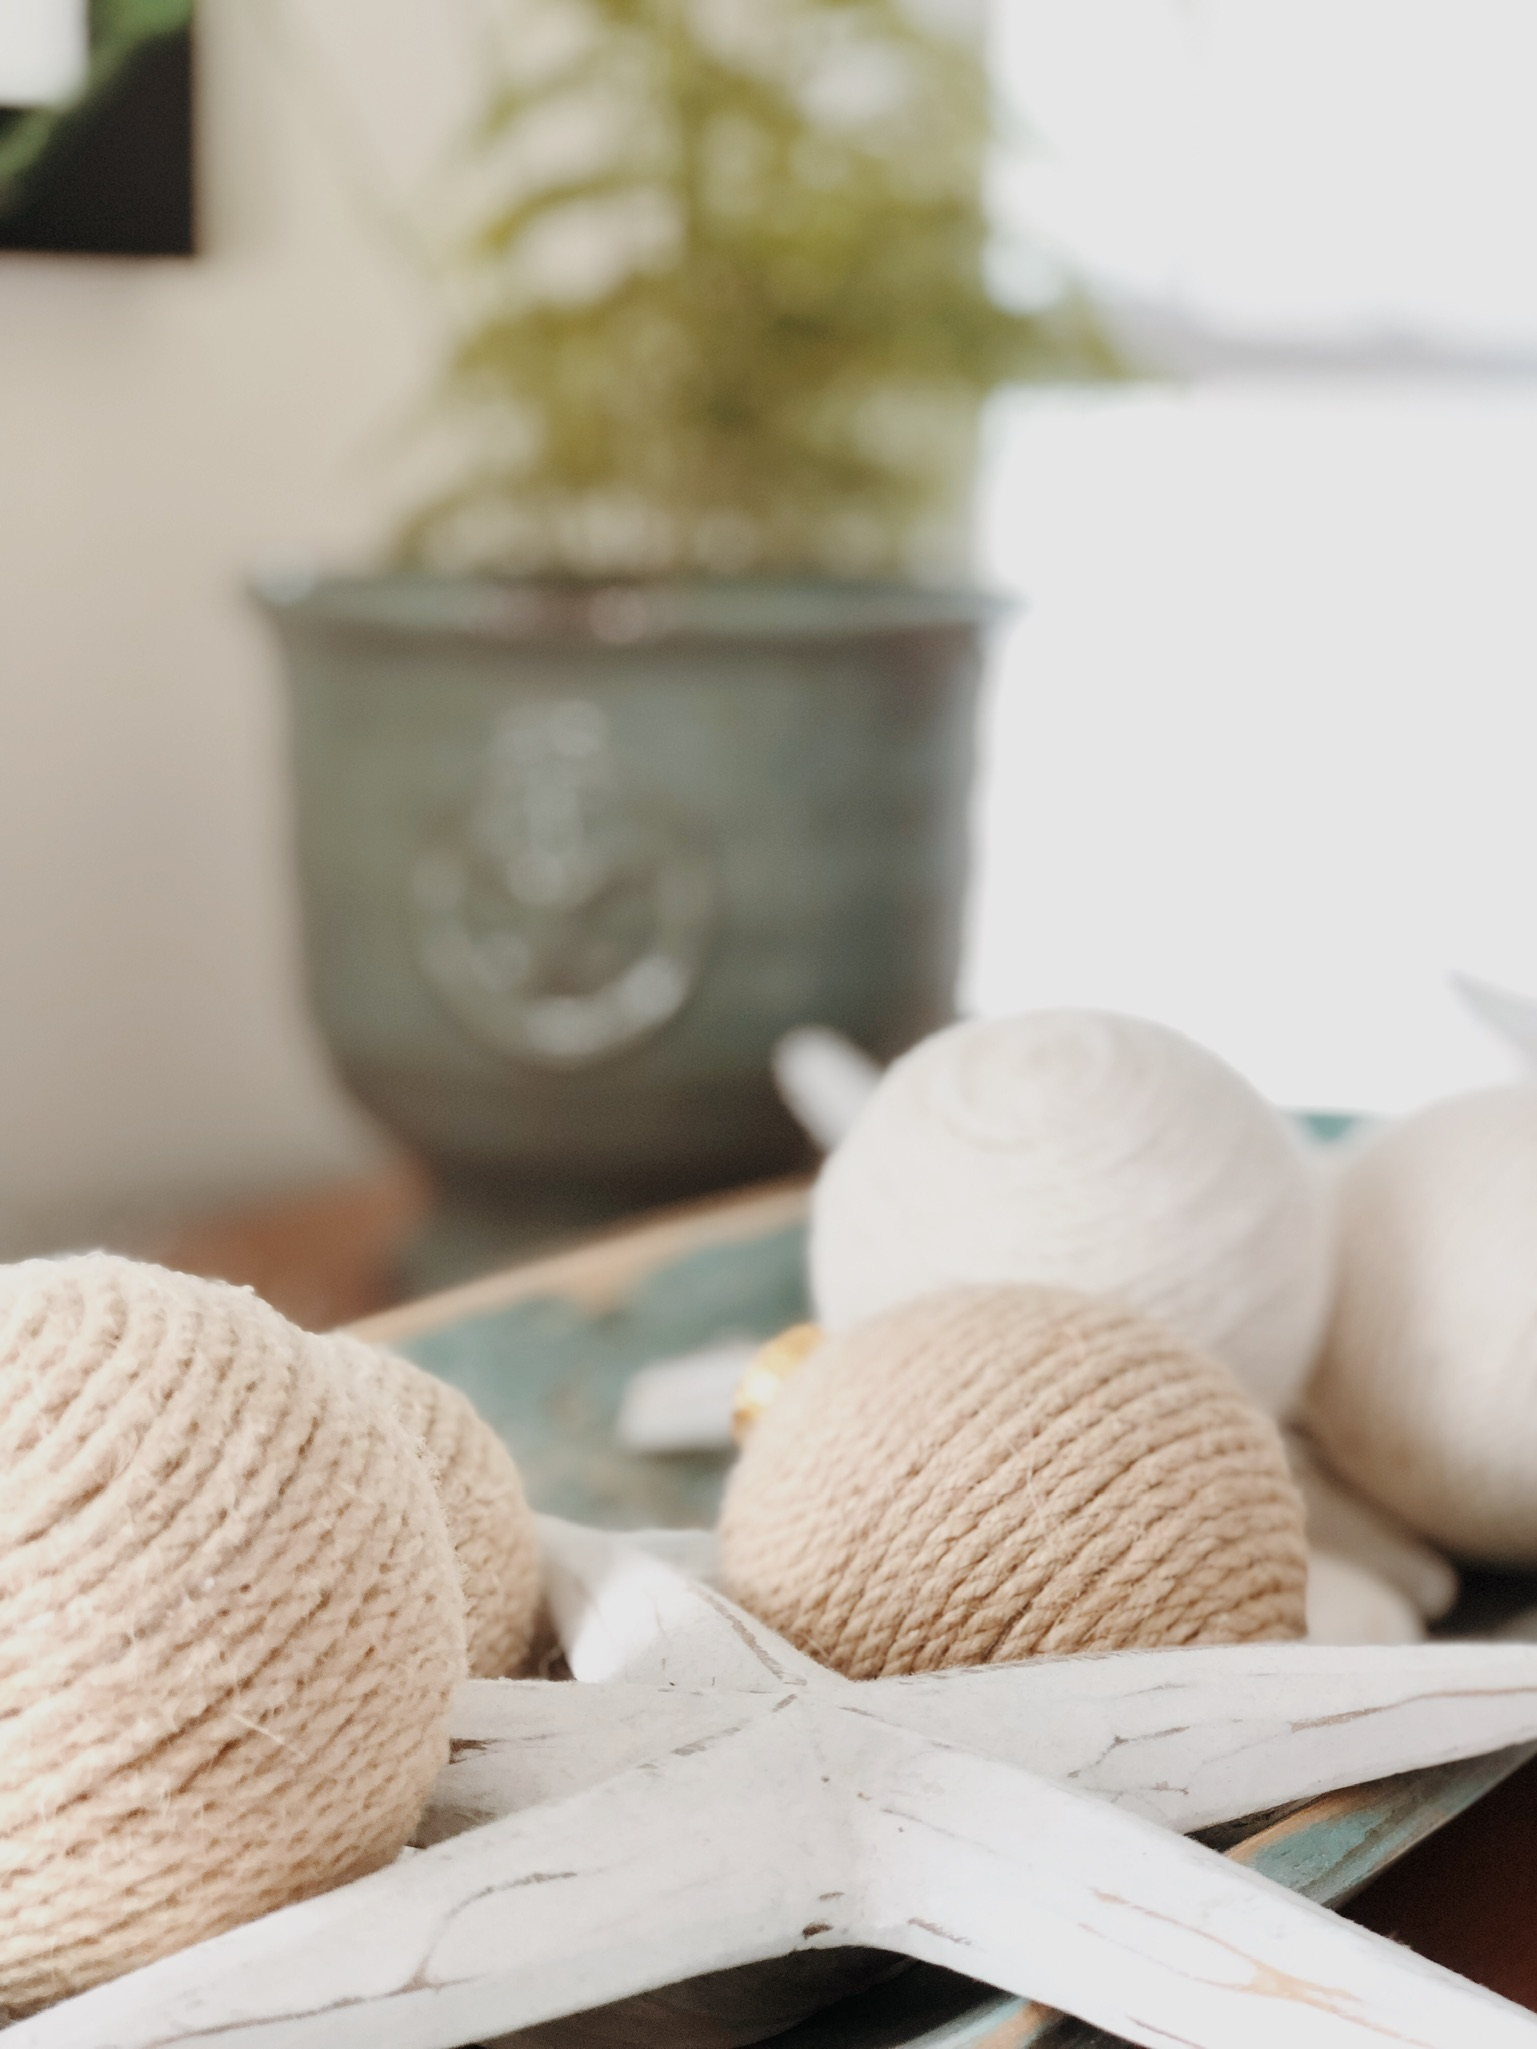 Handcrafted décor made with twine and displayed in a wooden bowl accentuates the casual design.